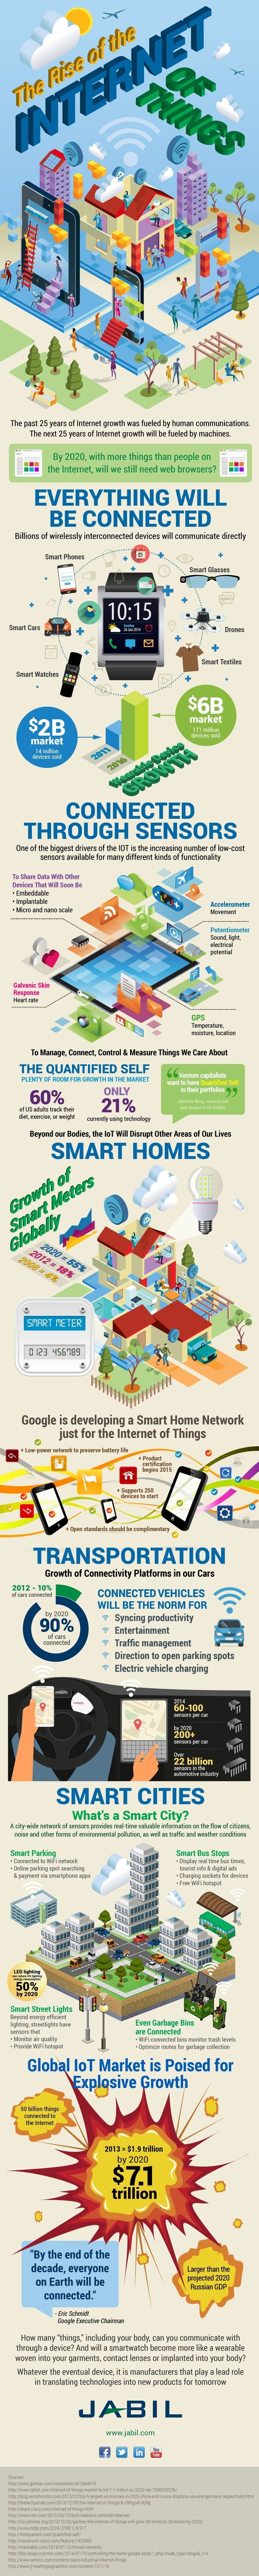 The rise of the internet of things #IoT #Smart_City #Infographic